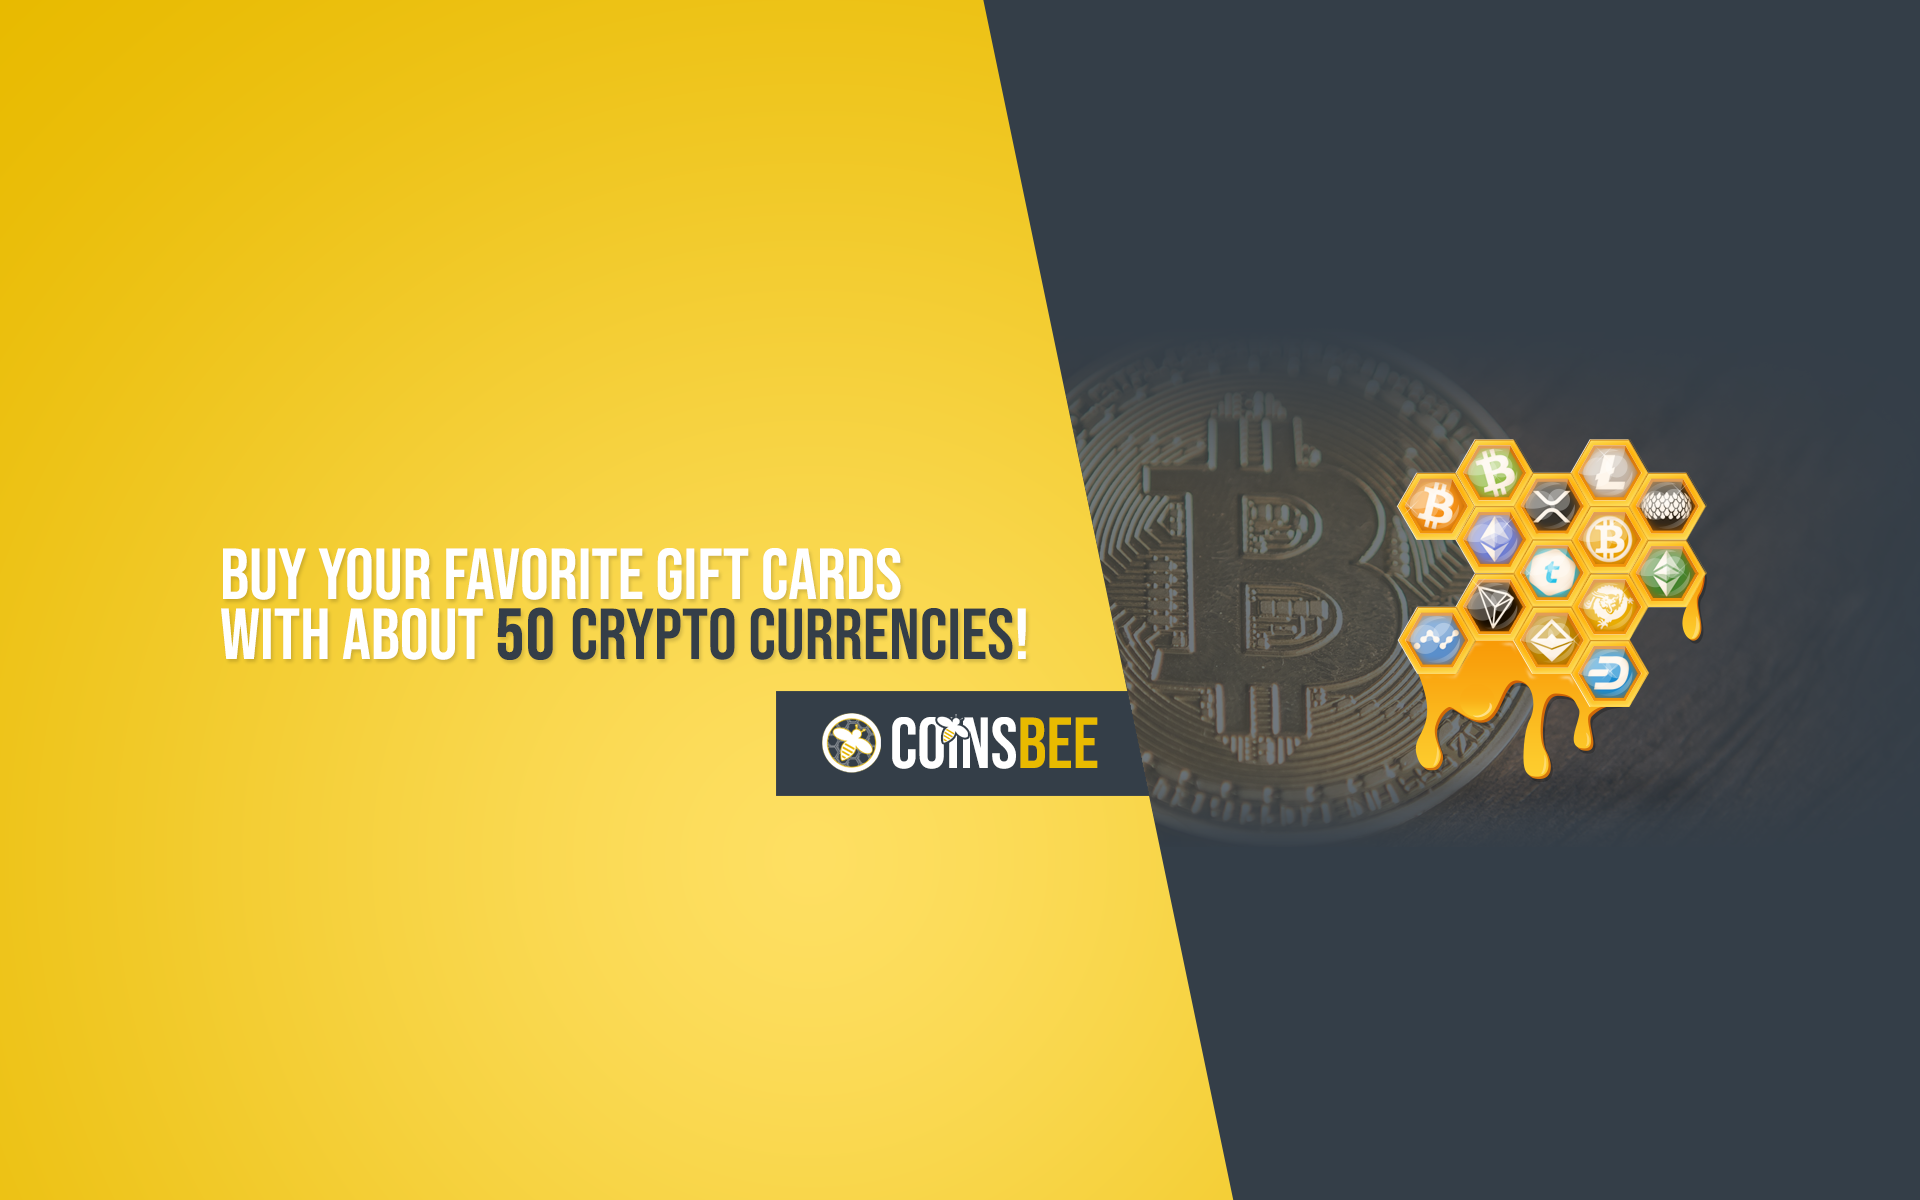 How To Buy Gift Cards Or Top Up Your Mobile With Crypto And CoinsBee